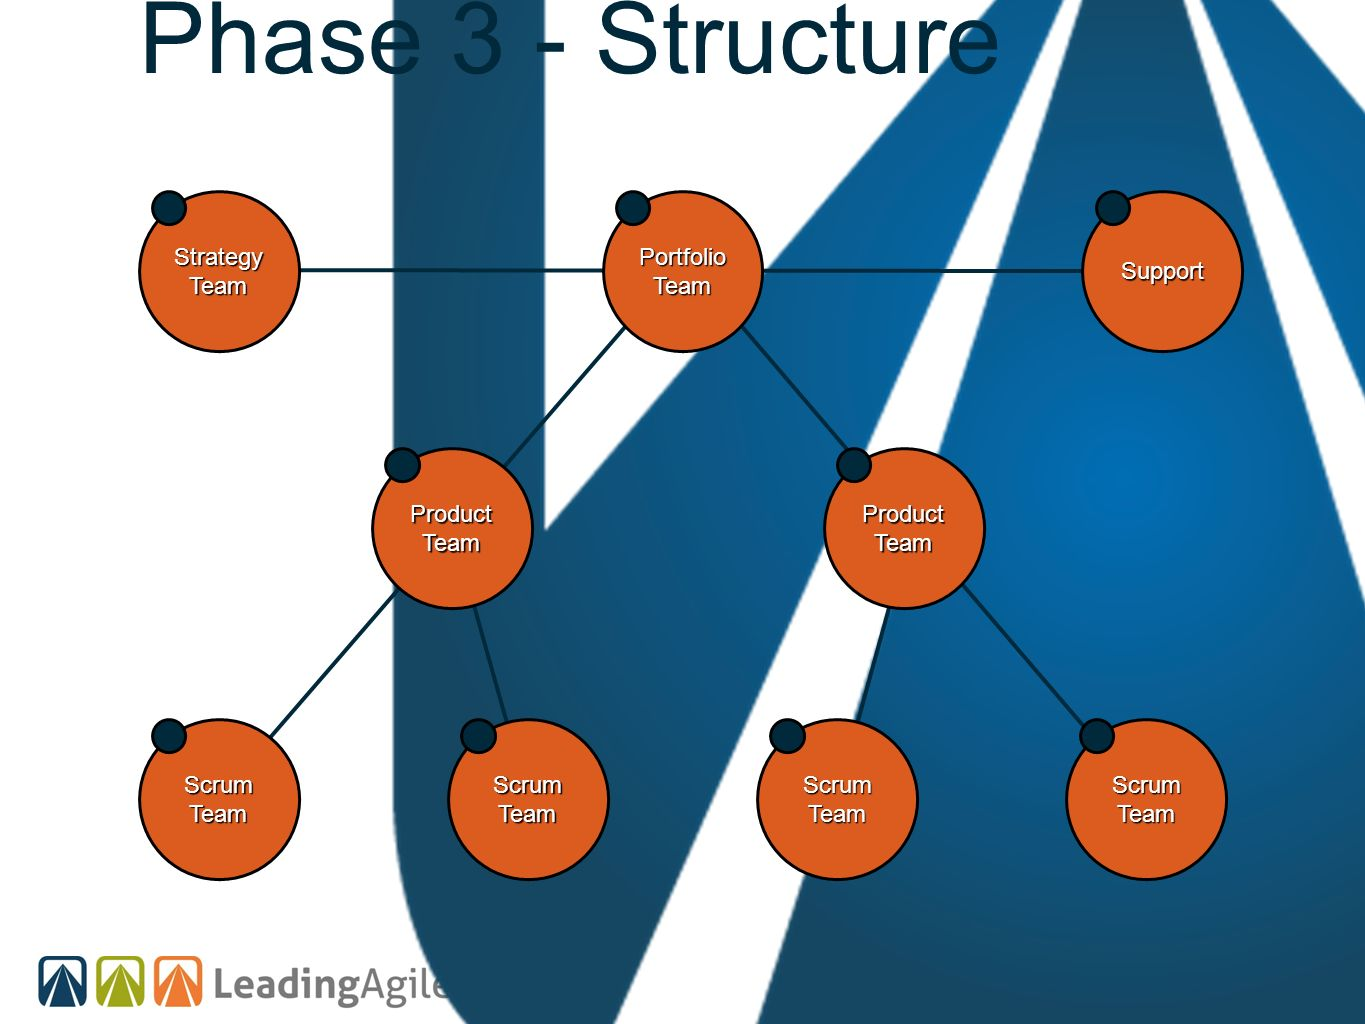 Phase 3 - Structure Scrum Team Portfolio Product Strategy Support